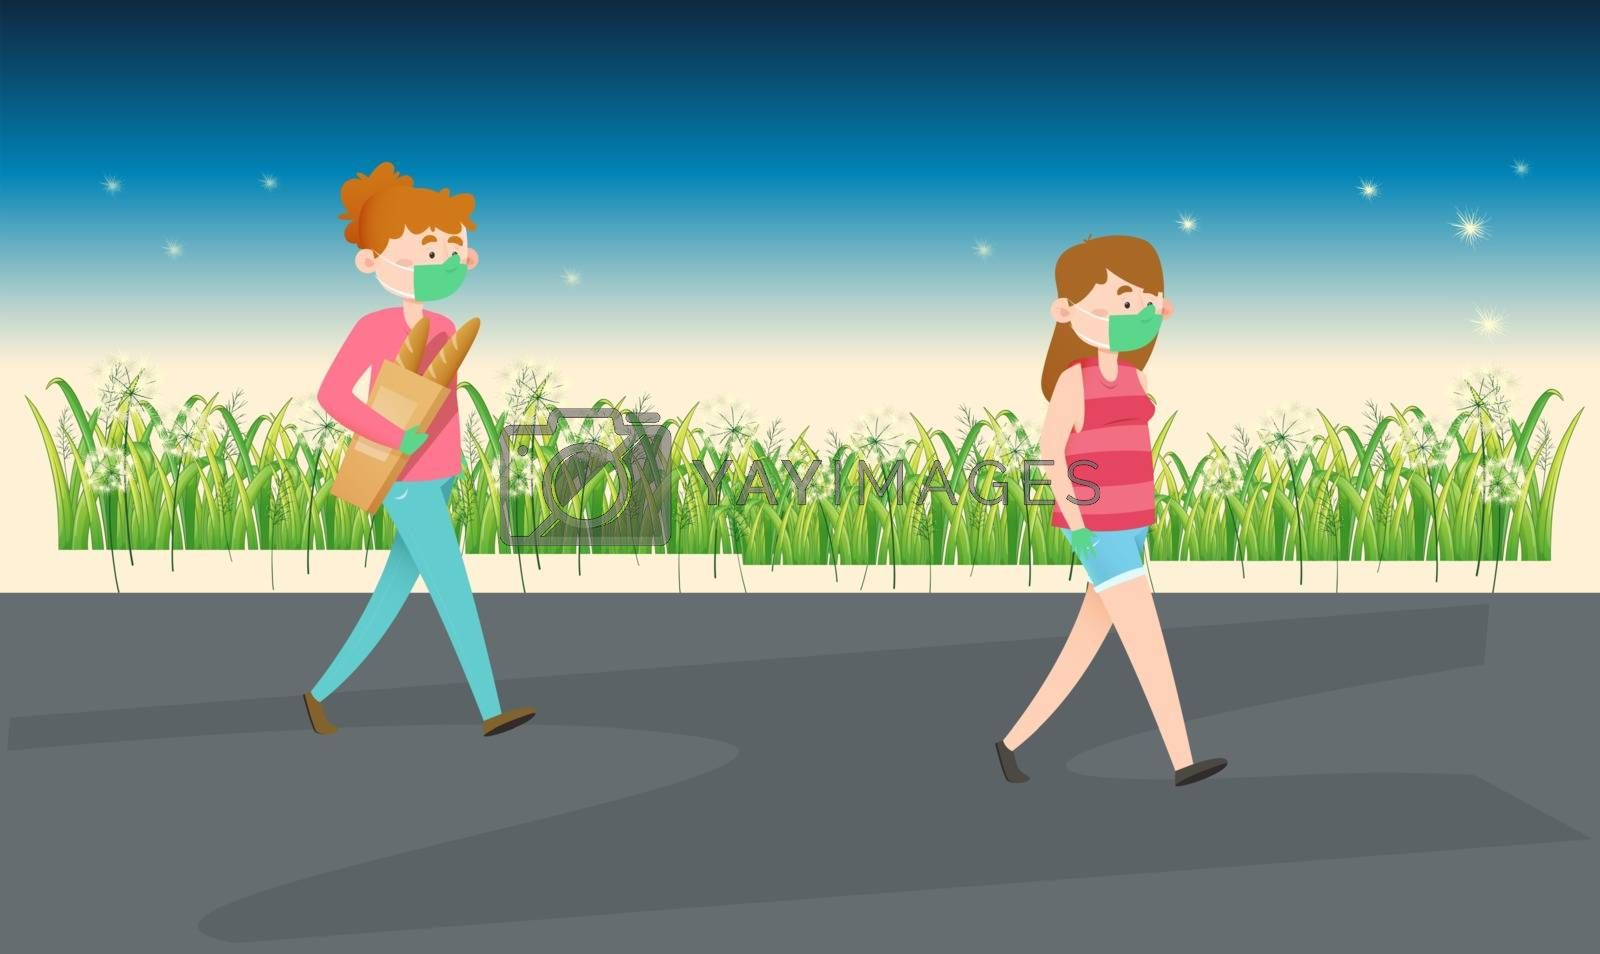 two girls are walking on the road in the evening